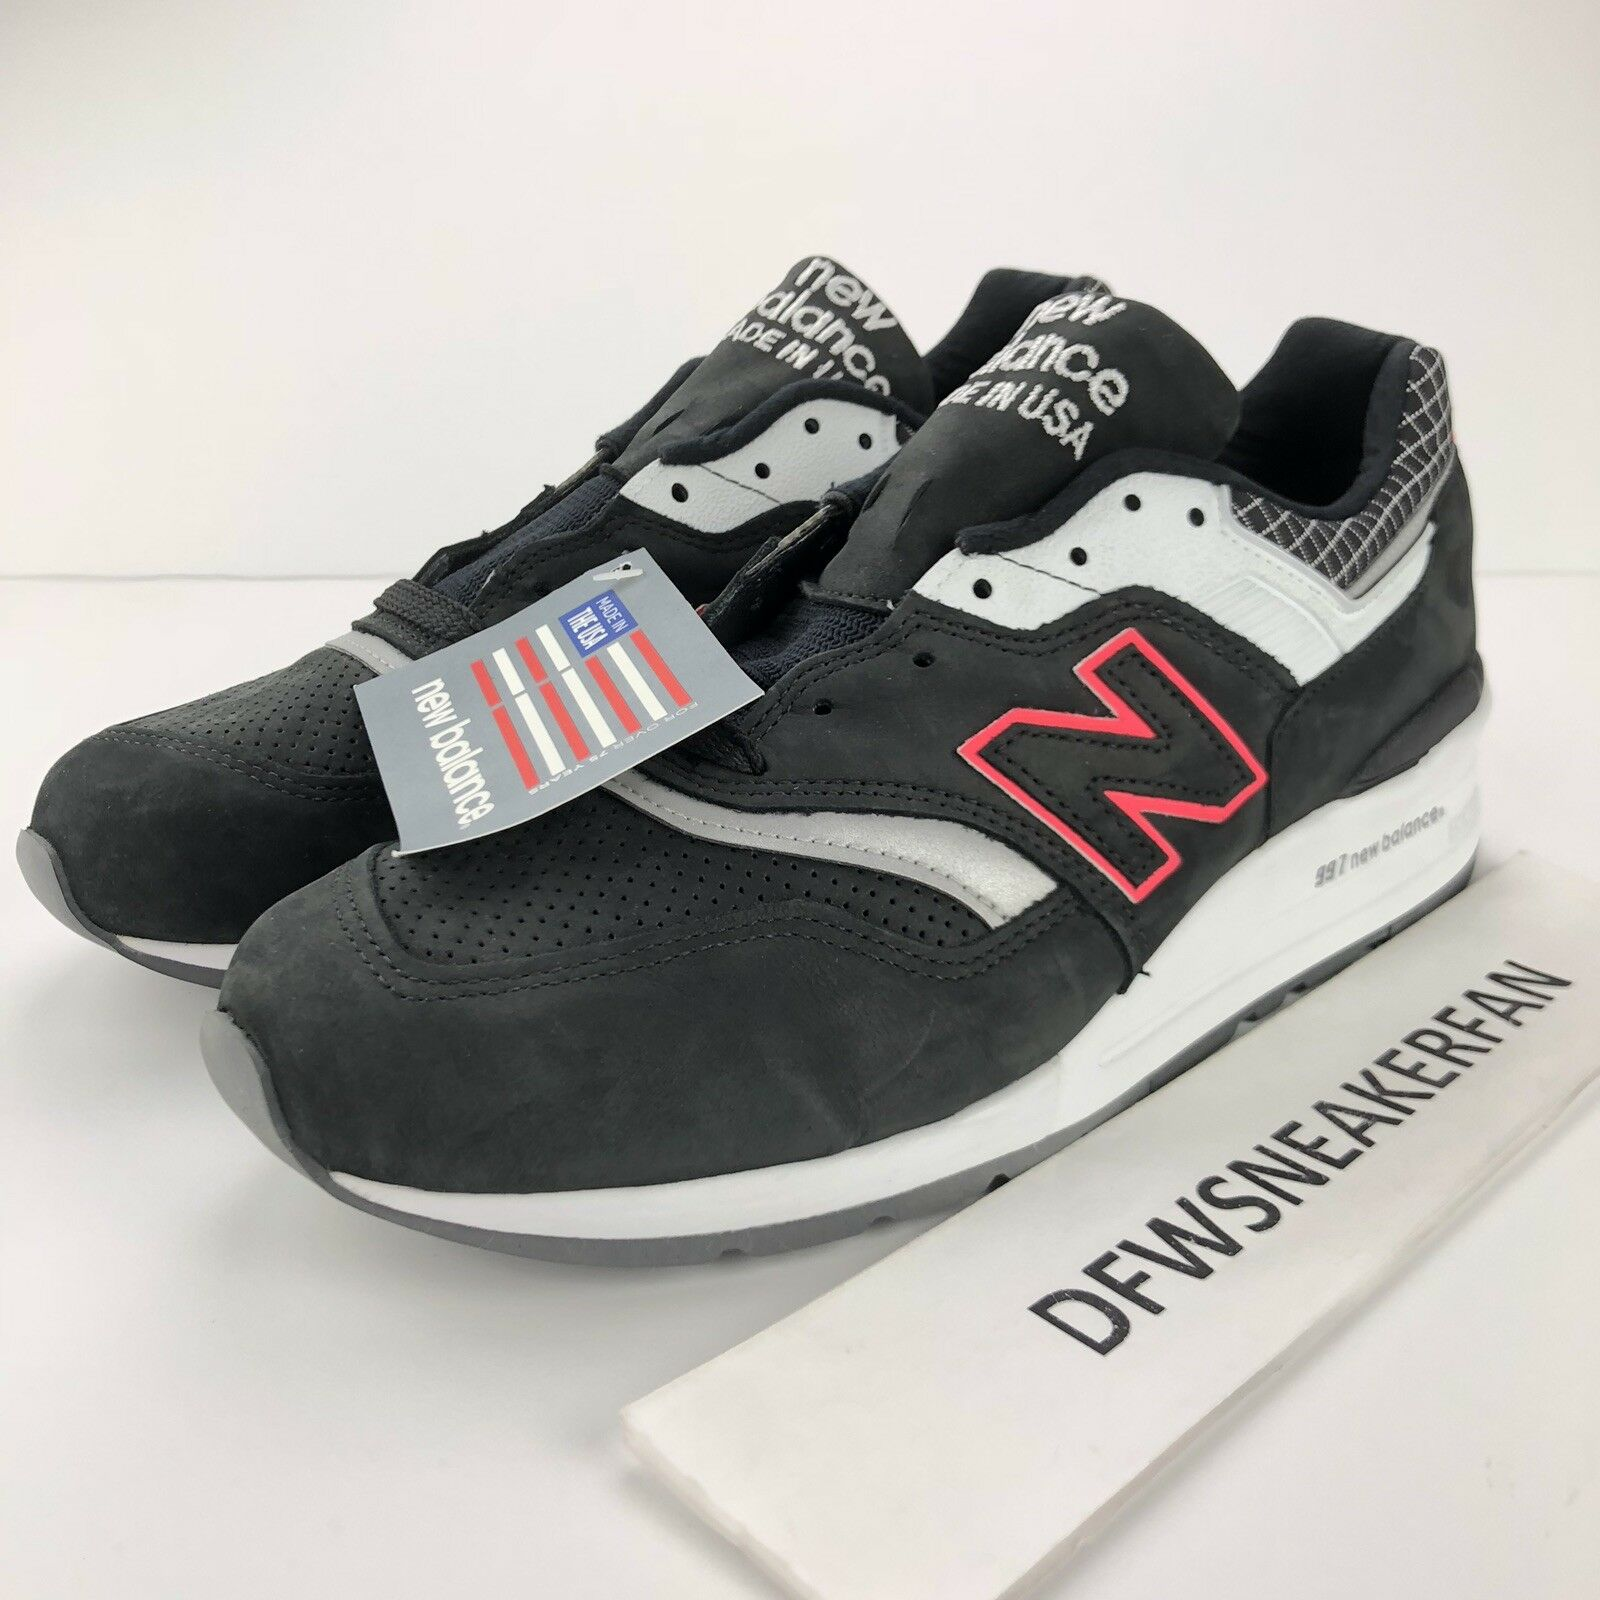 New Balance 997 Uomo's Size 7 Spectrum Kith Ronnie Fieg Made in  A M997CR New